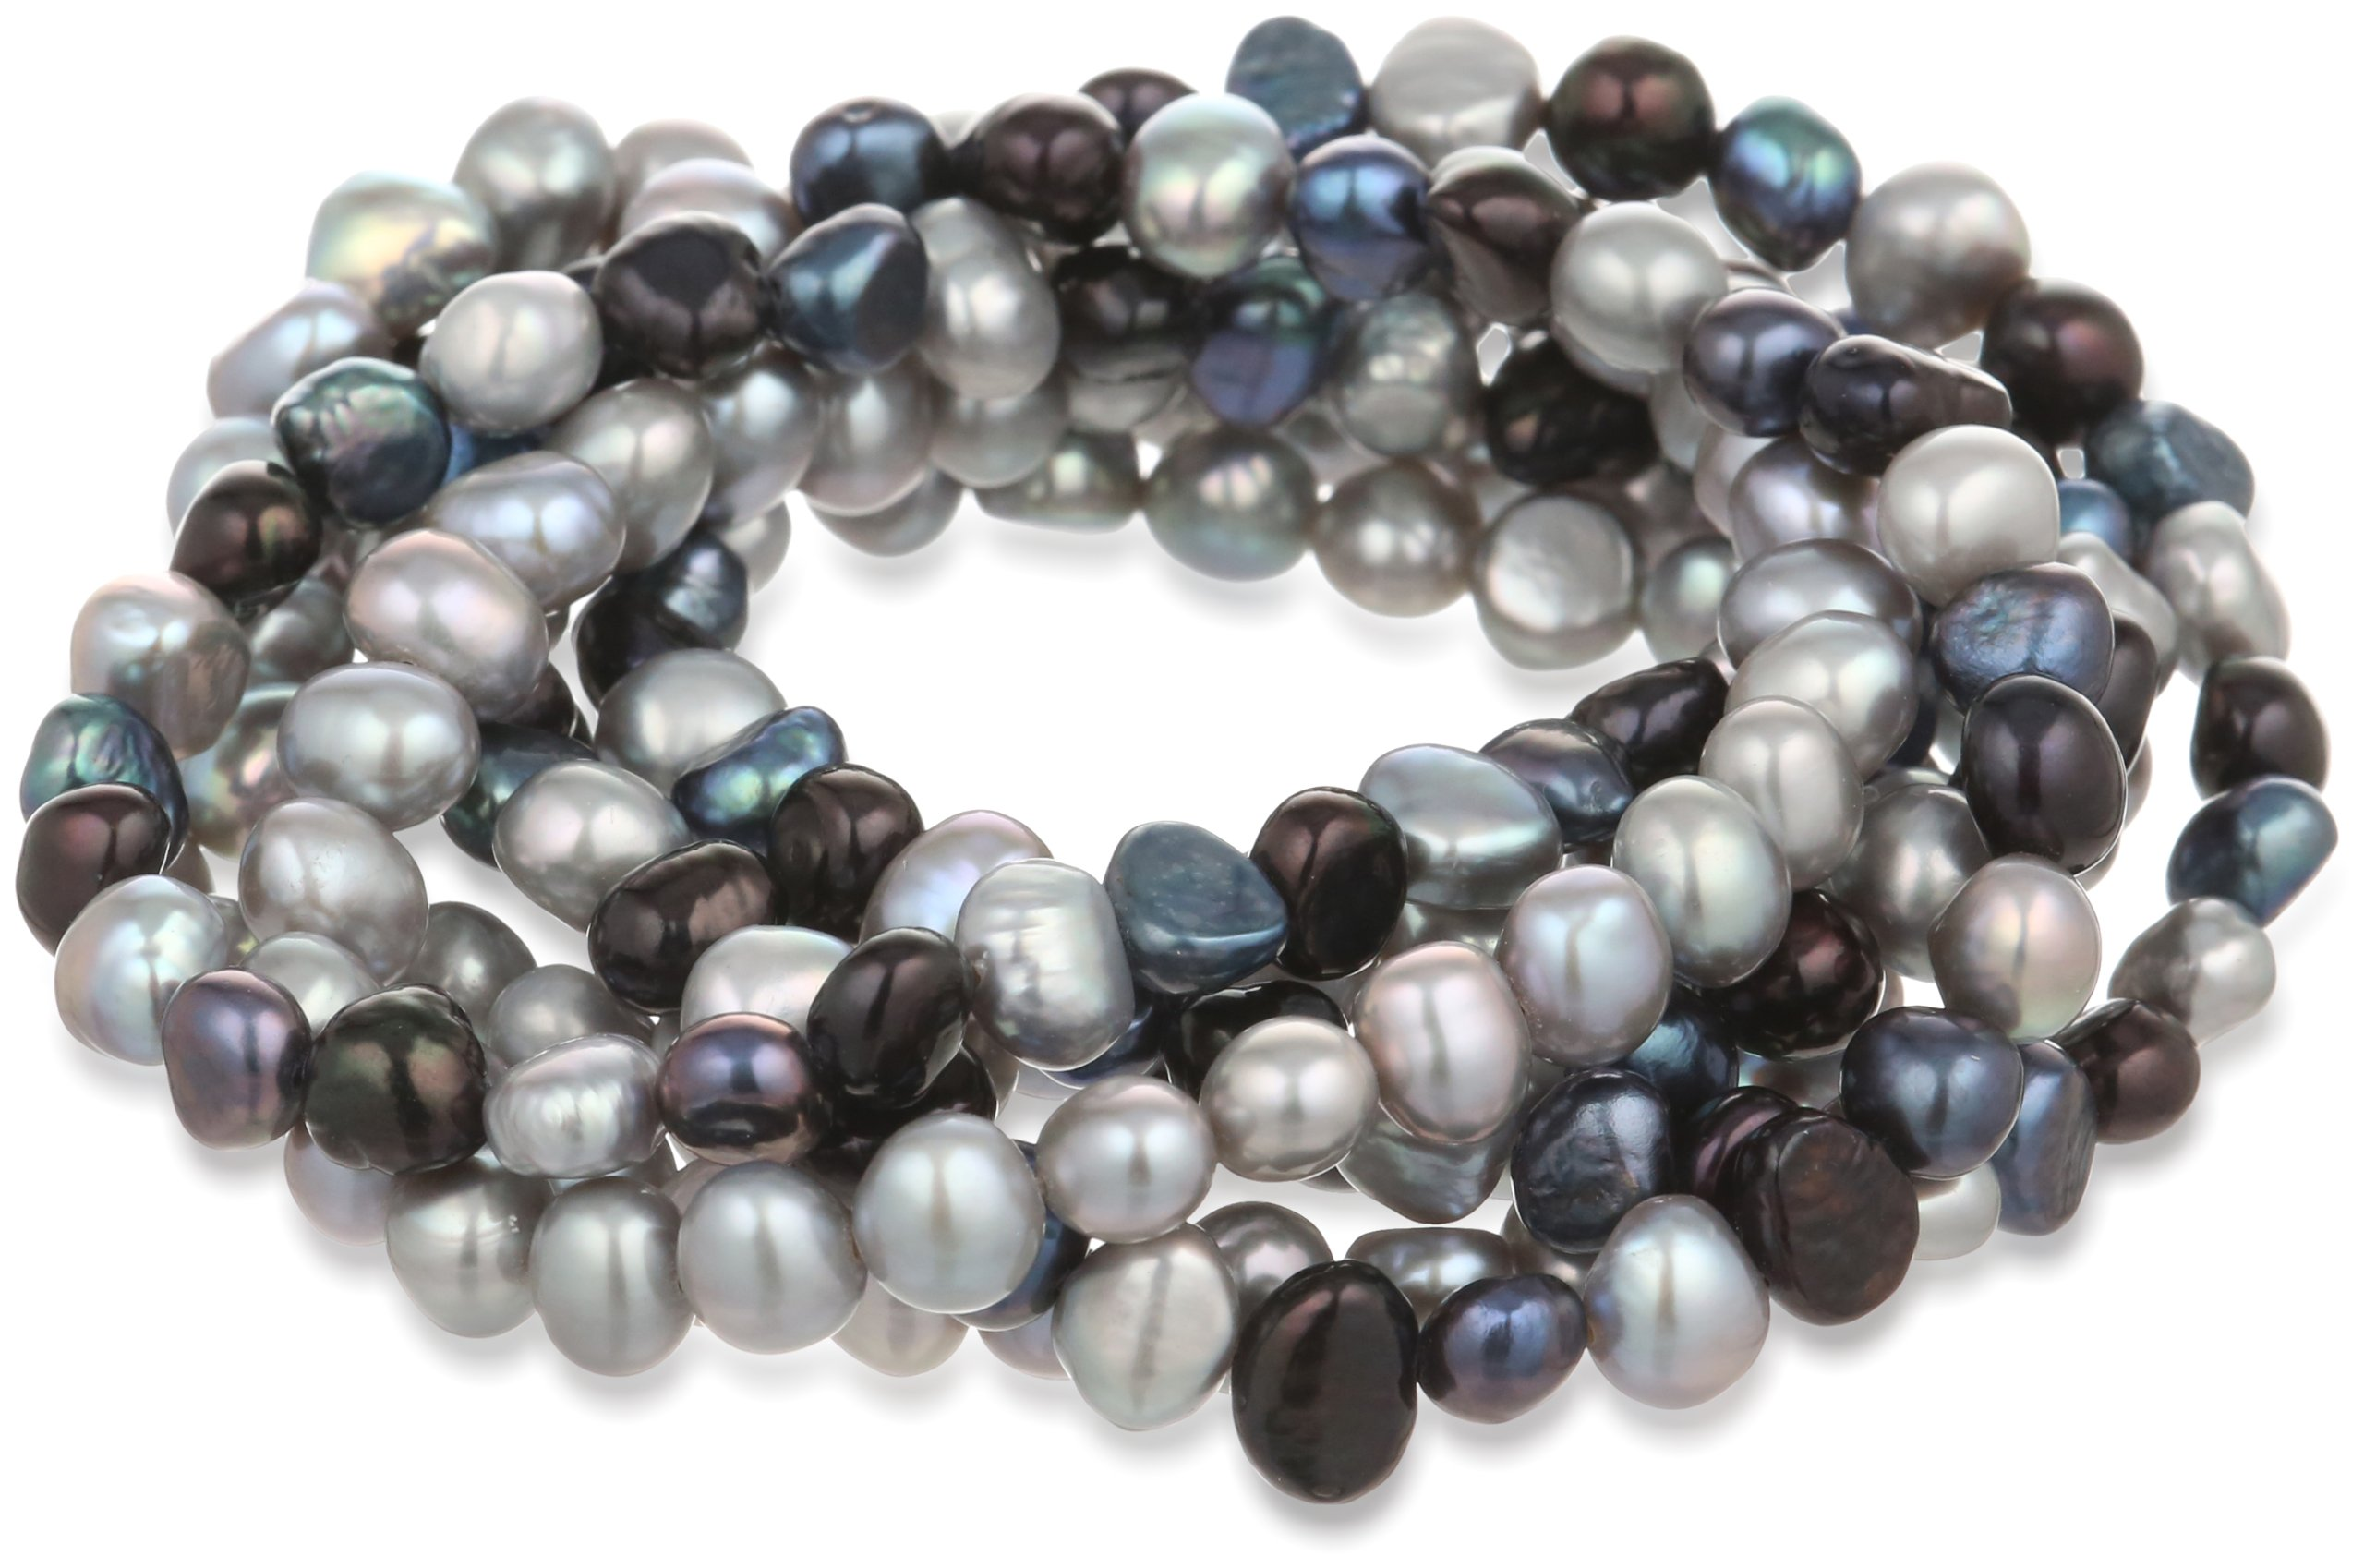 7-Piece Black, Peacock, Silver Grey Dyed Freshwater Cultured Pearls Stretch Bracelet Set, 7.5''